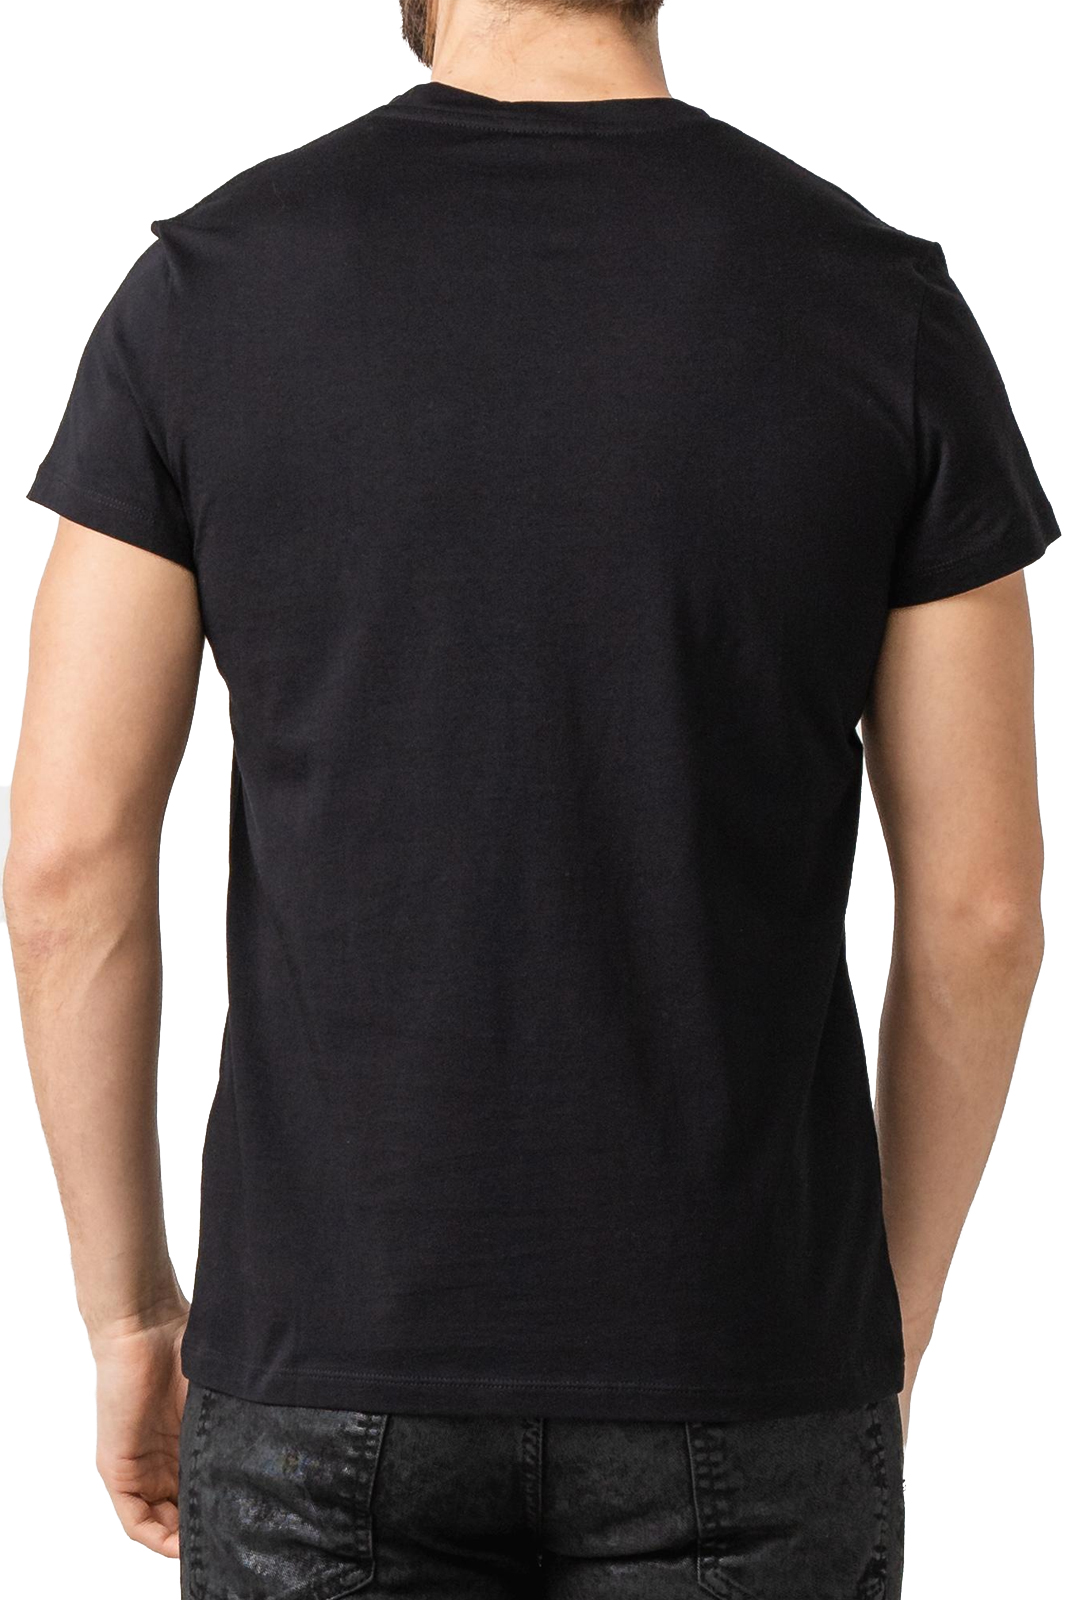 Tee-shirts  Balmain RH11601 BLACK/OR